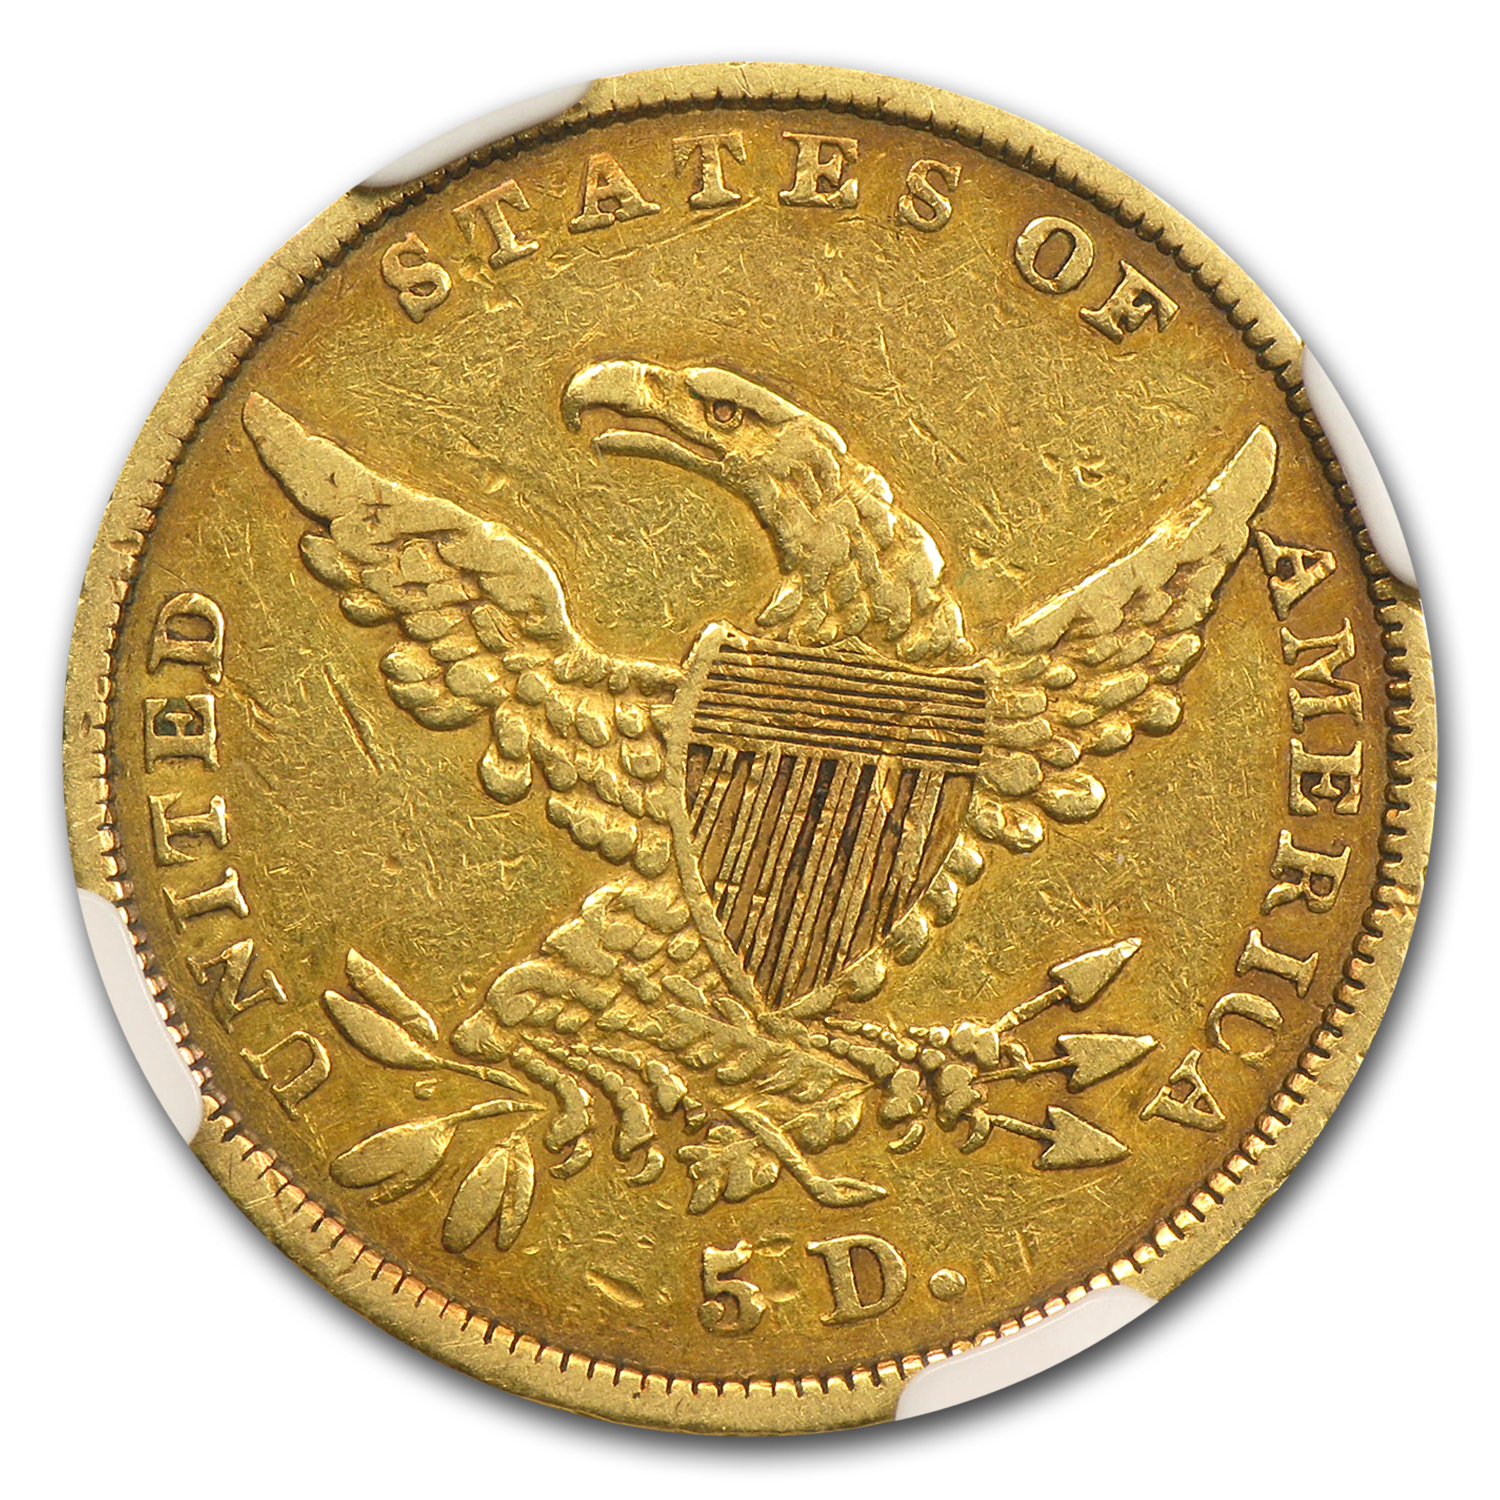 1836 $5 Gold Classic Head Half Eagle - Very Fine-25 NGC